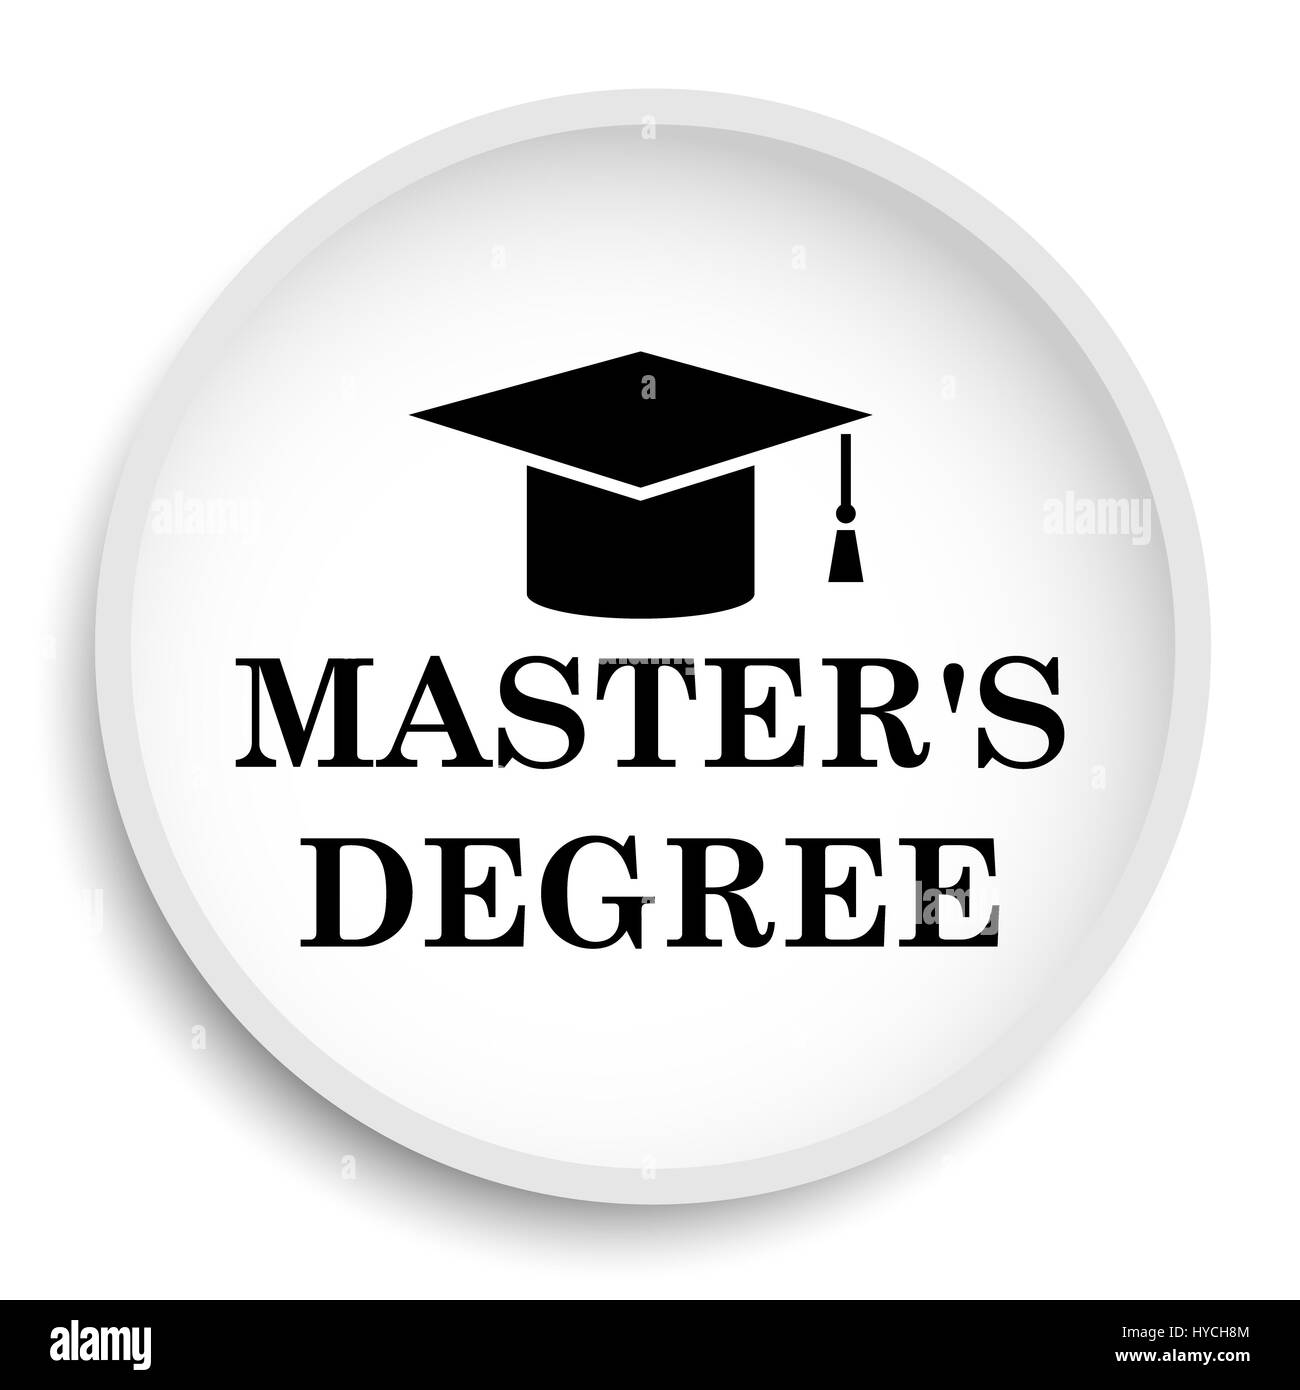 Master's Degree Icon Master's Degree Website Button On. Business Promotional Products. Associates In Human Resources. Used Mercedes Sprinter Conversion Van. Using Retirement Funds To Purchase Real Estate. Internet Answering Services Visa To Morocco. Stem Cell Biotech Companies Car Racing Gam. Pest Control Flower Mound Tx Gift Red Wine. Emerald Residential Property Management